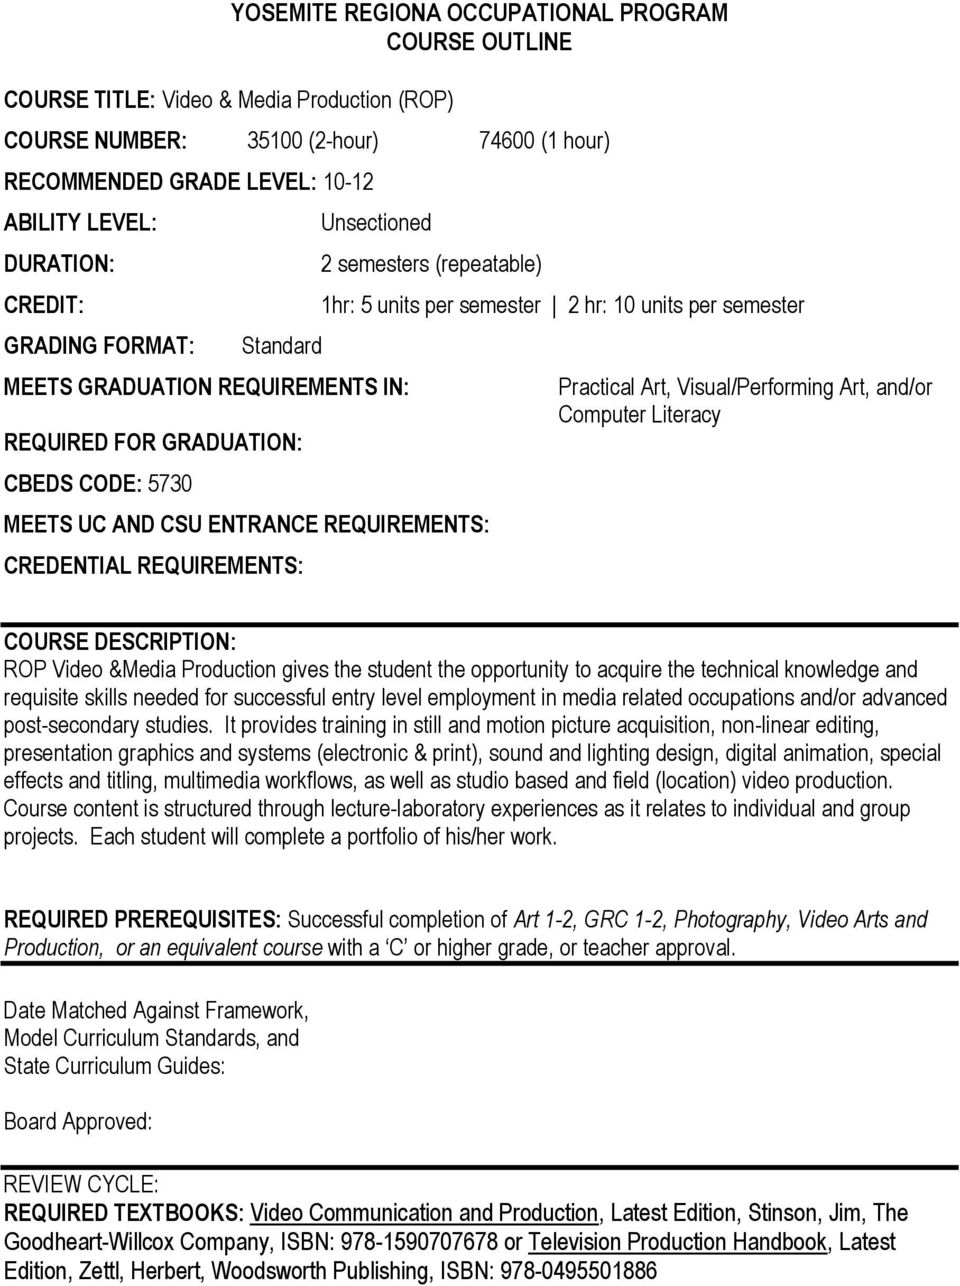 REQUIREMENTS: 1hr: 5 units per semester 2 hr: 10 units per semester Practical Art, Visual/Performing Art, and/or Computer Literacy COURSE DESCRIPTION: ROP Video &Media Production gives the student